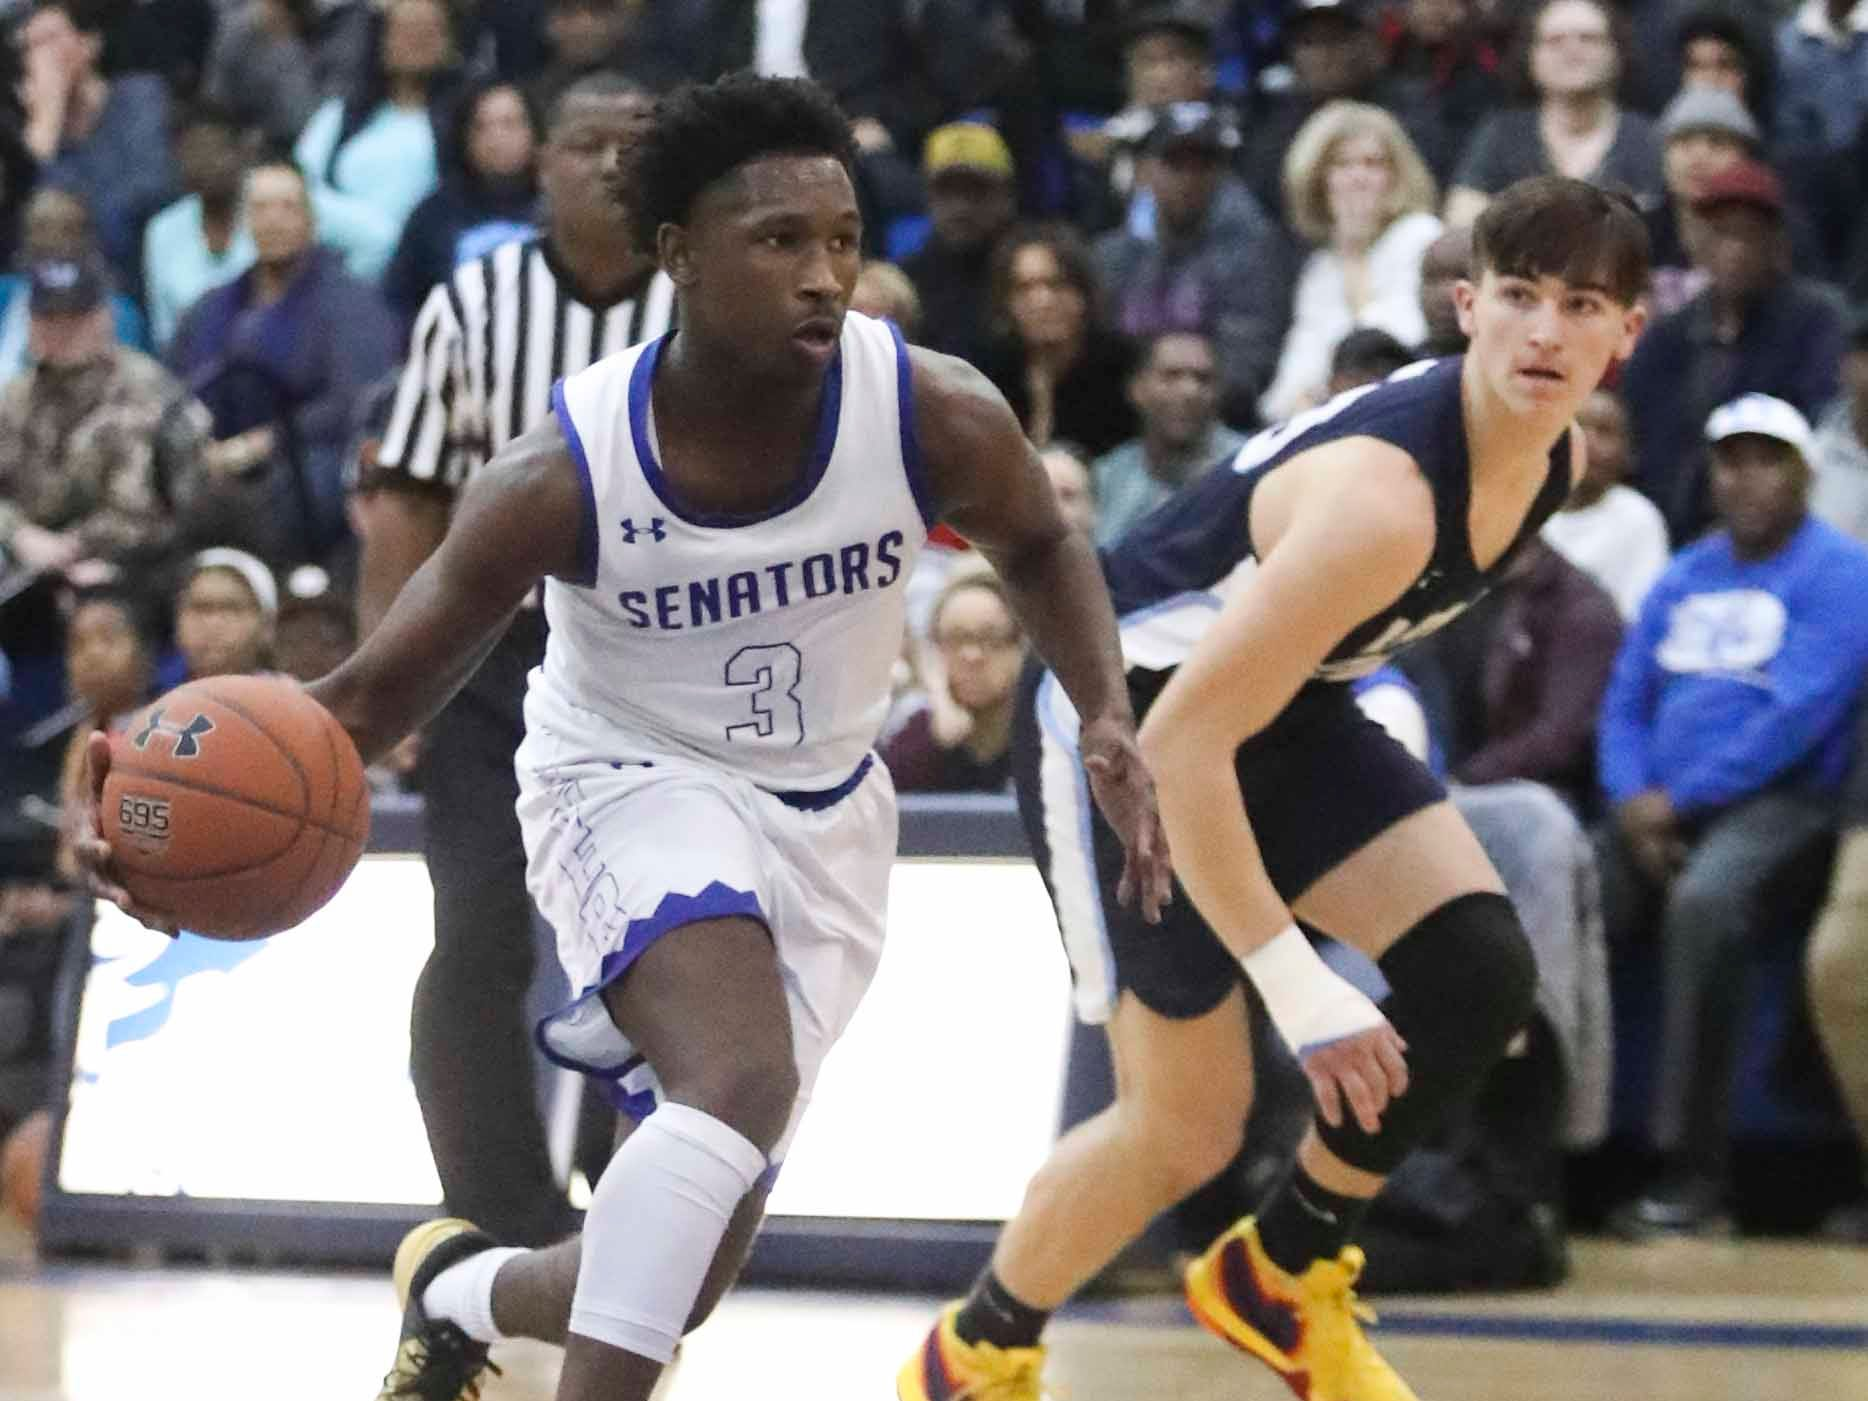 Dover's Eden Davis (left) moves toward the hoop as Lake Forest's Nathan McGray defends in Dover's win in the Henlopen Conference title game at Dover High School Friday.